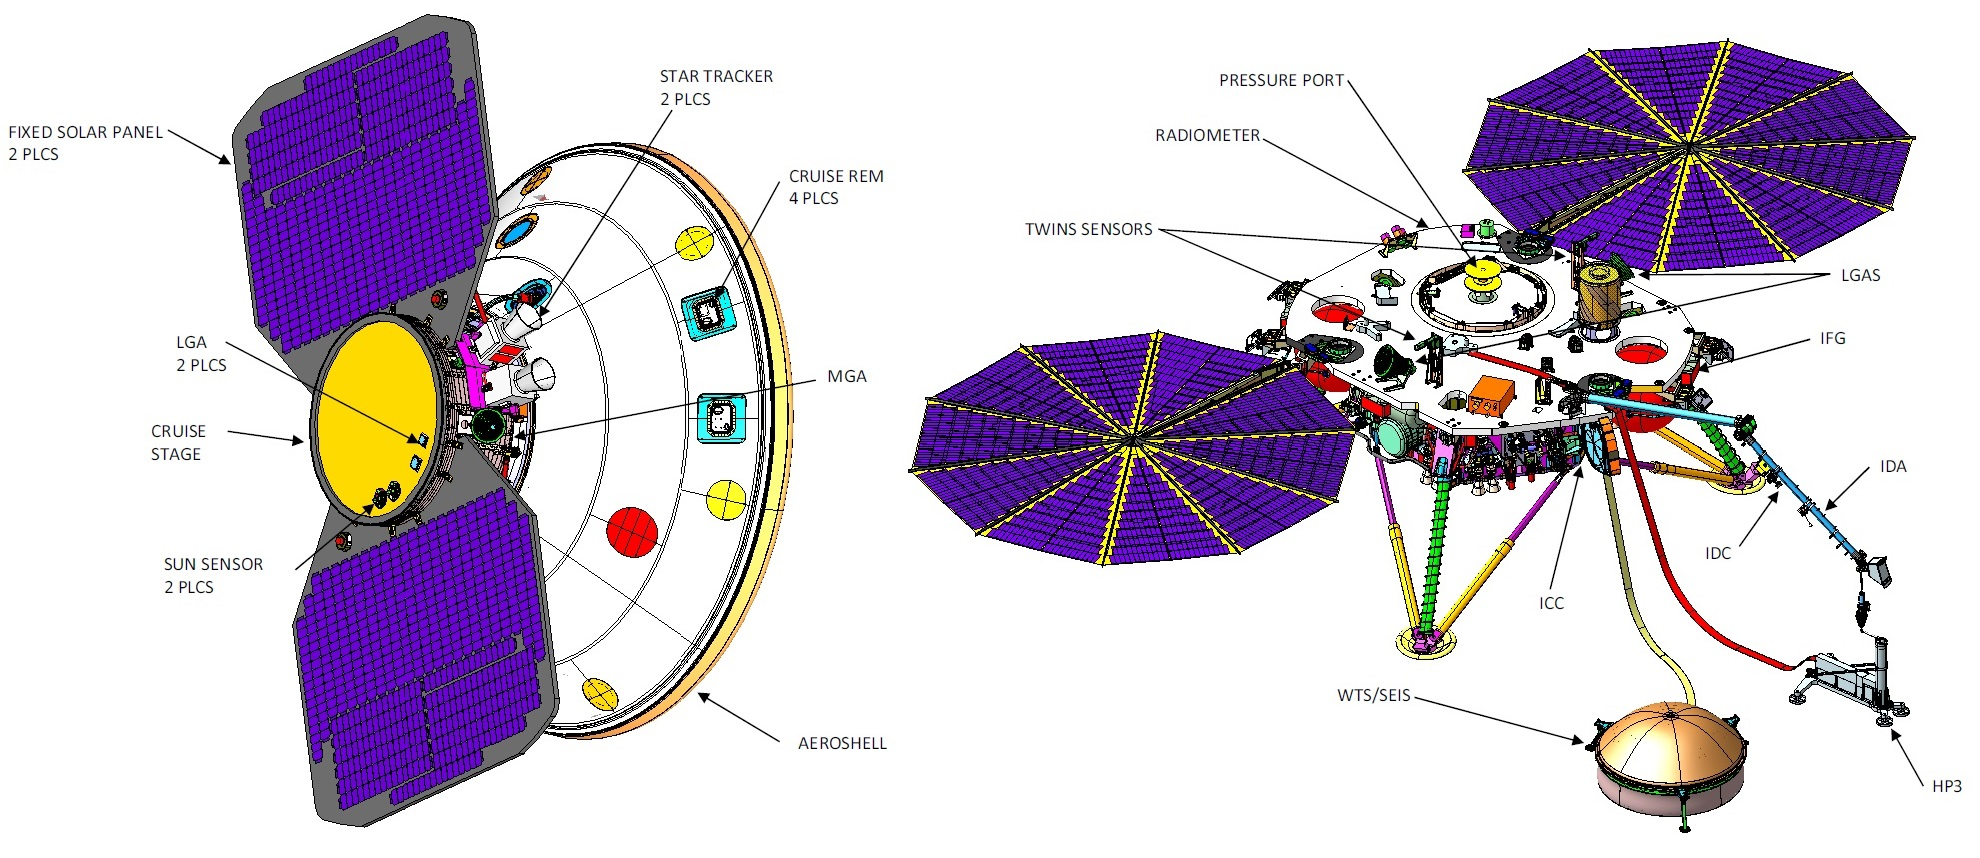 Insight Spacecraft Spaceflight101 12 Lead Motor Star Delta Wiring Diagram Cruise Landed Configuration Image Nasa Project